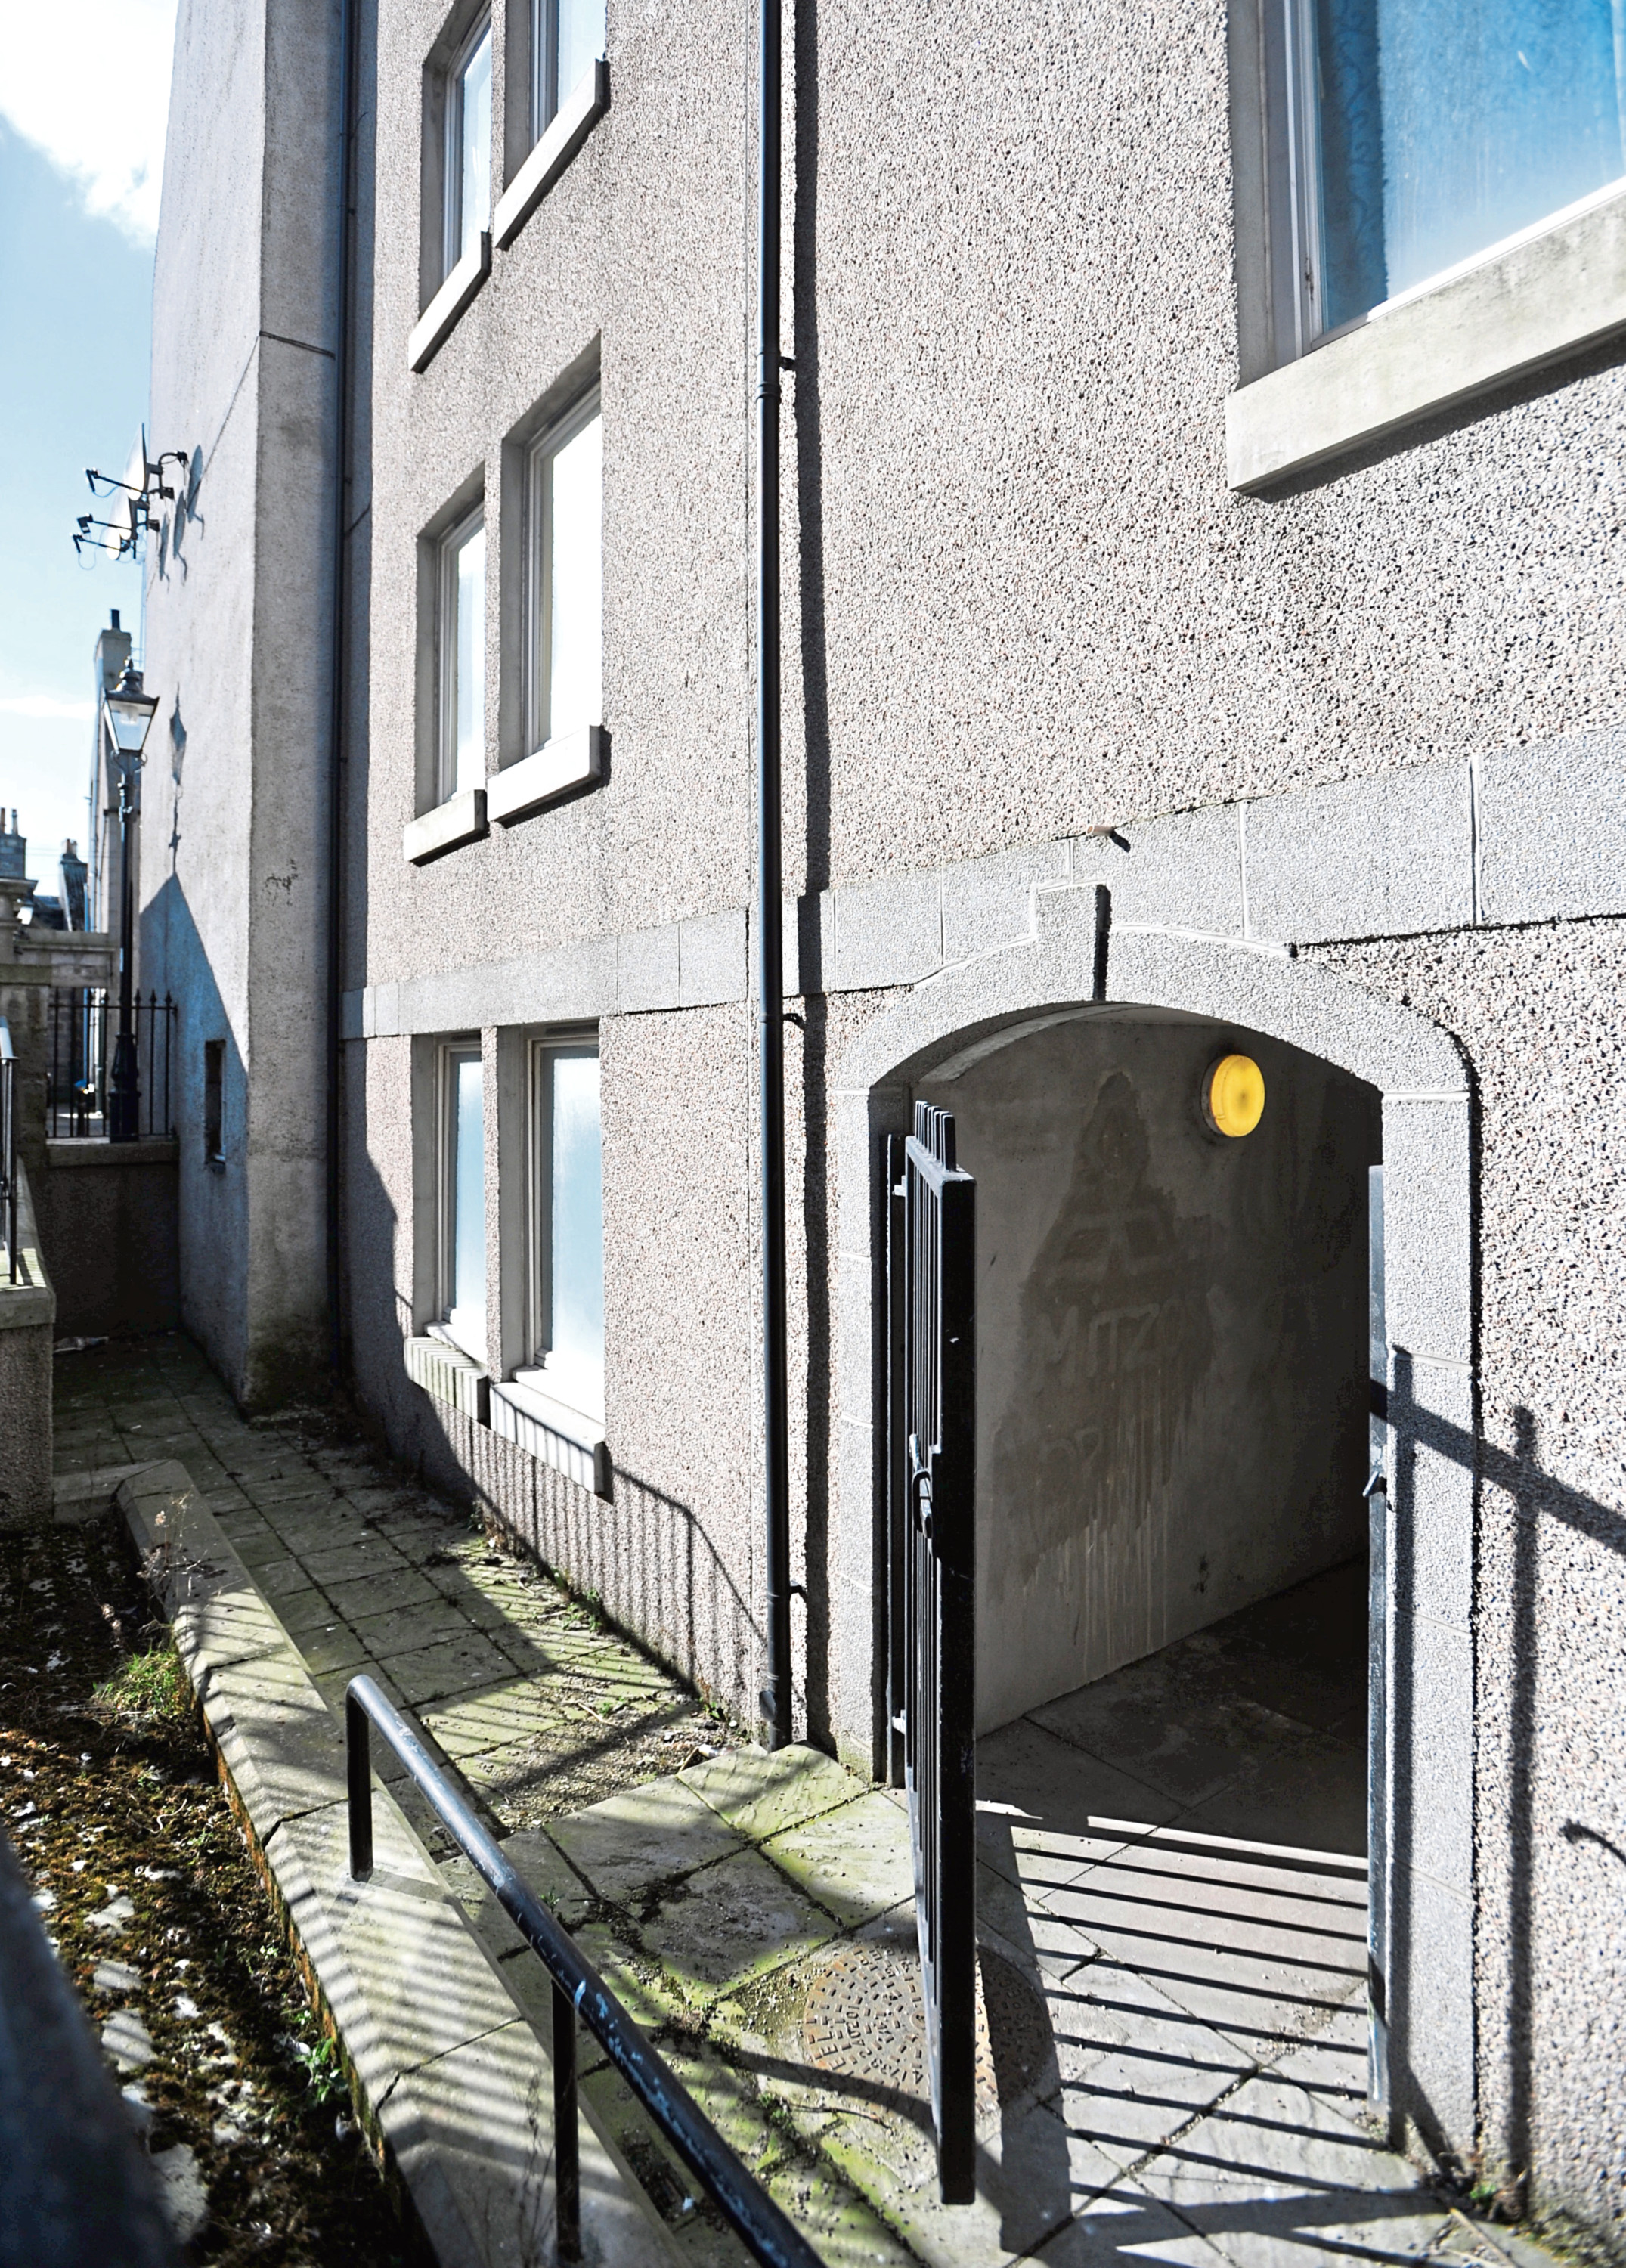 Mews-style flats have already been built on the historic Adelphi